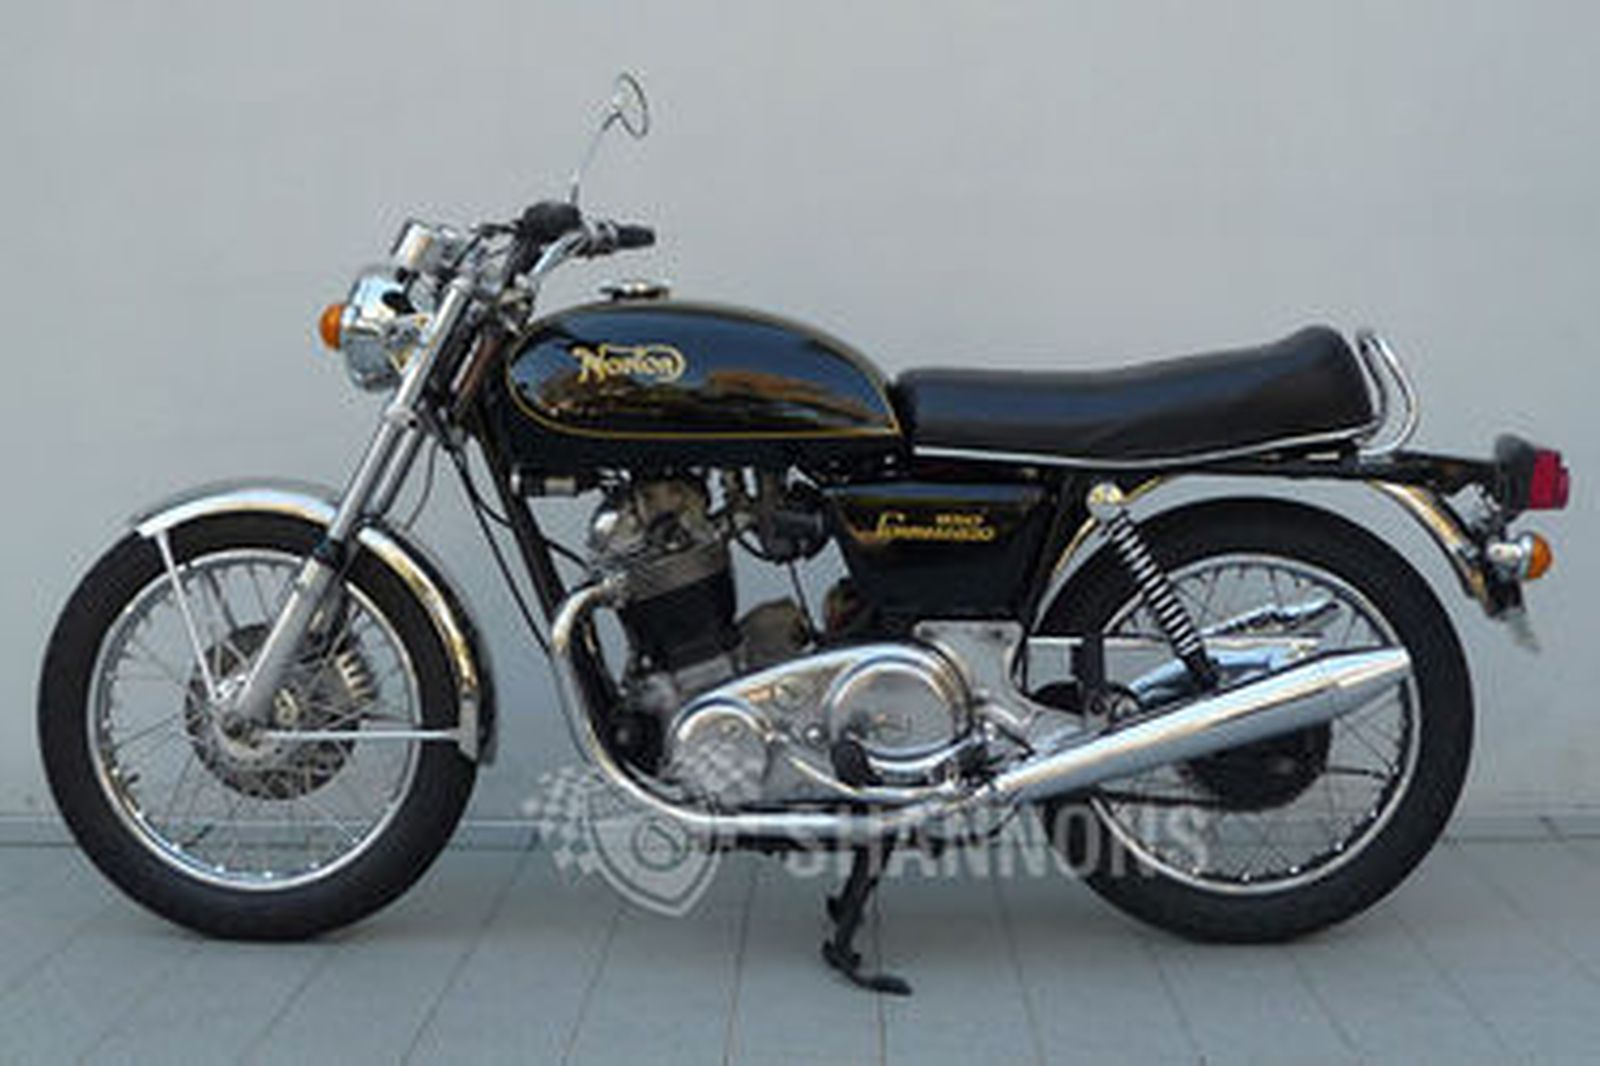 Sold norton commando 850 mkiia interstate motorcycle for Motor vehicle open on saturday